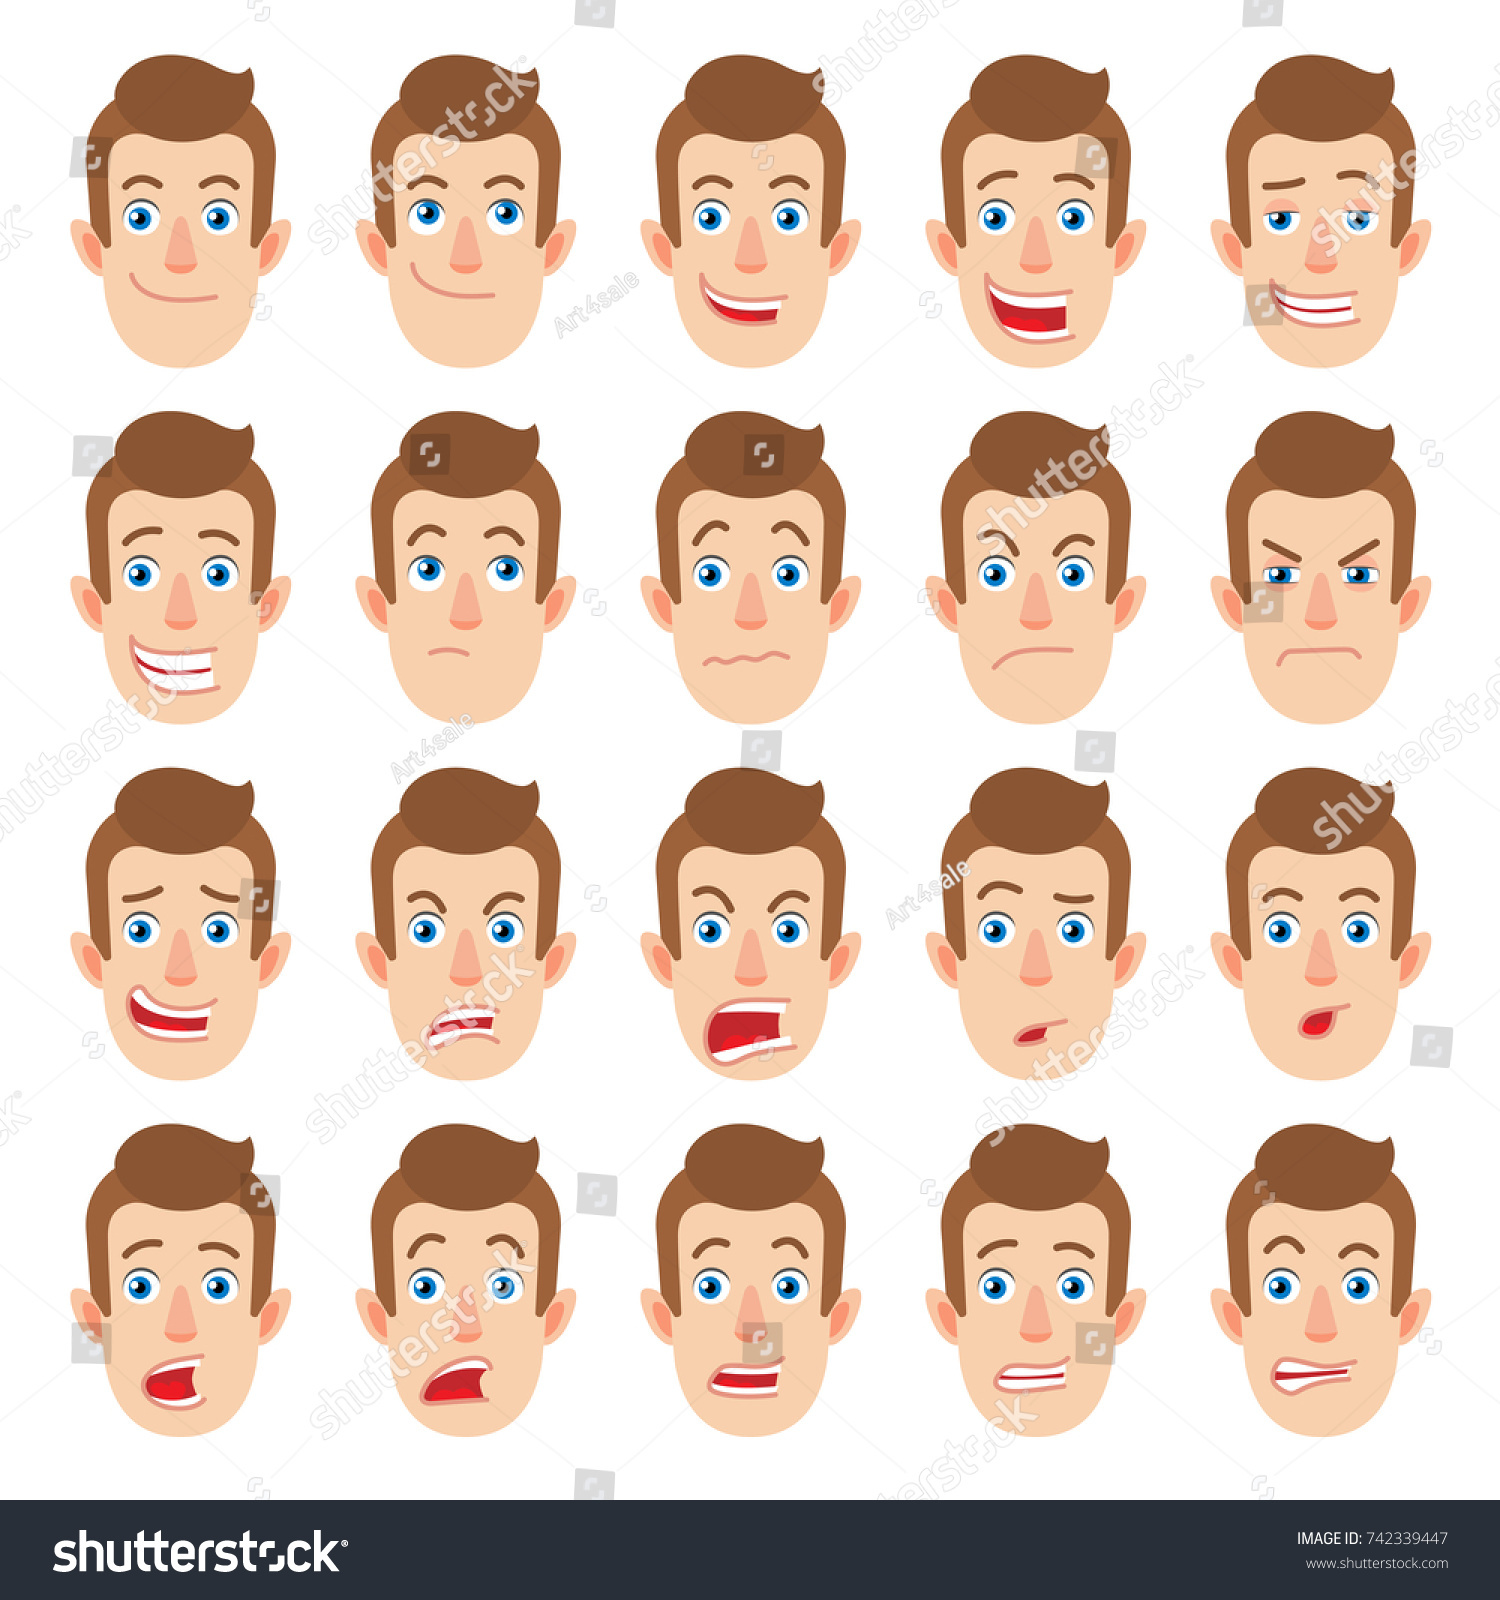 Cartoon Man Different Facial Expressions Emotional Stock Vector Royalty Free 742339447